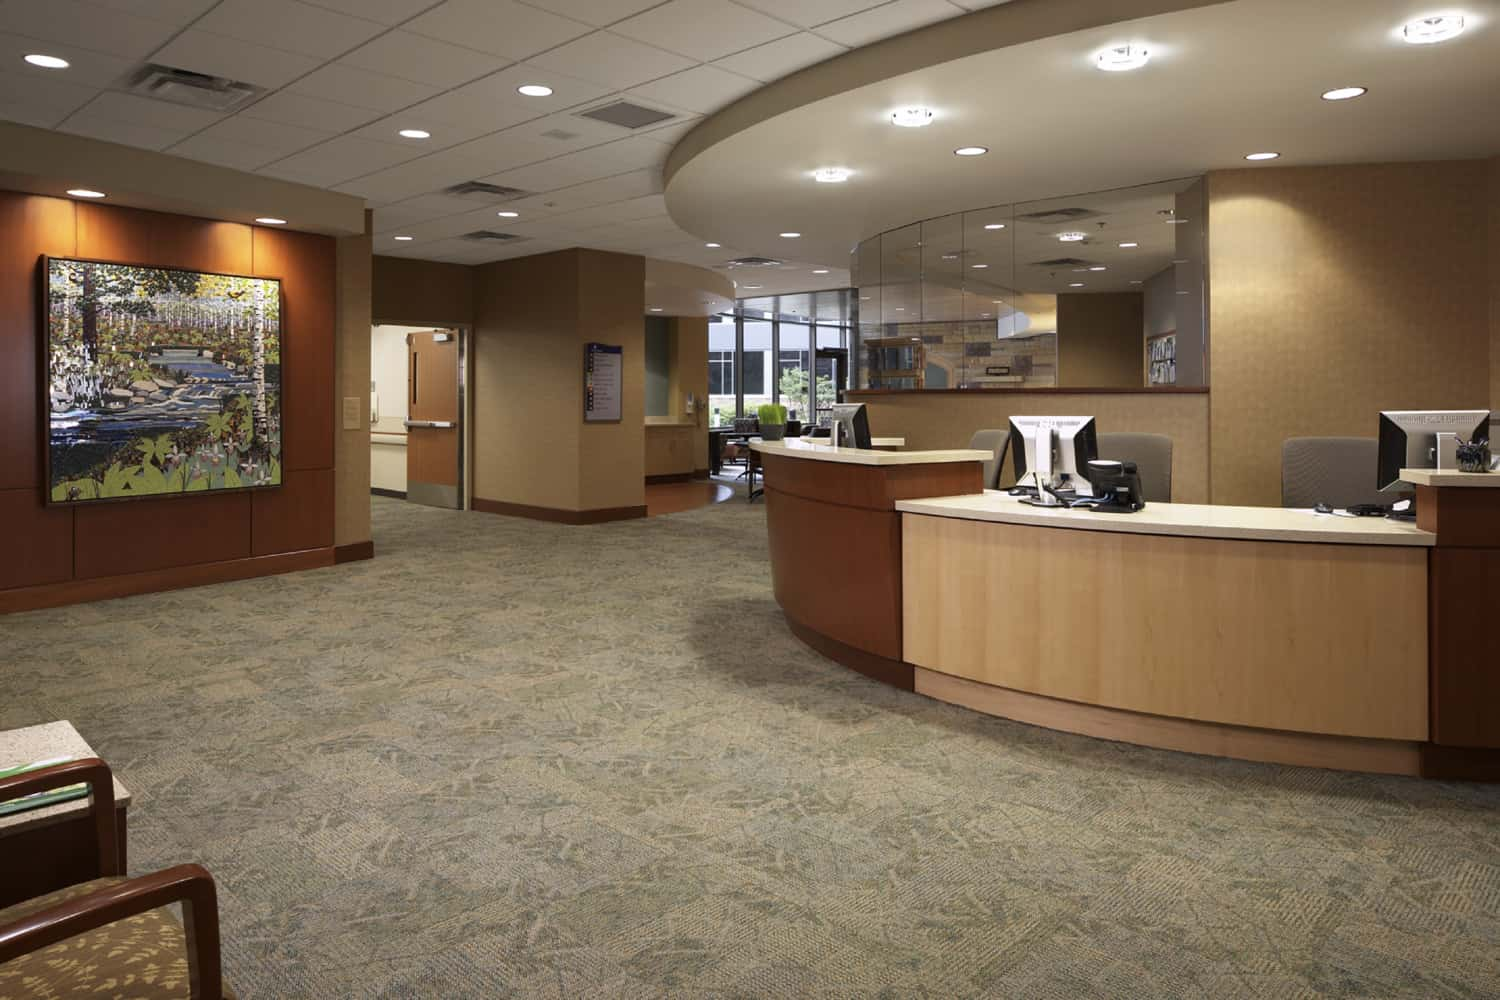 PARK NICOLLET HEALTH SERVICES FRAUENSHUH CANCER CENTER